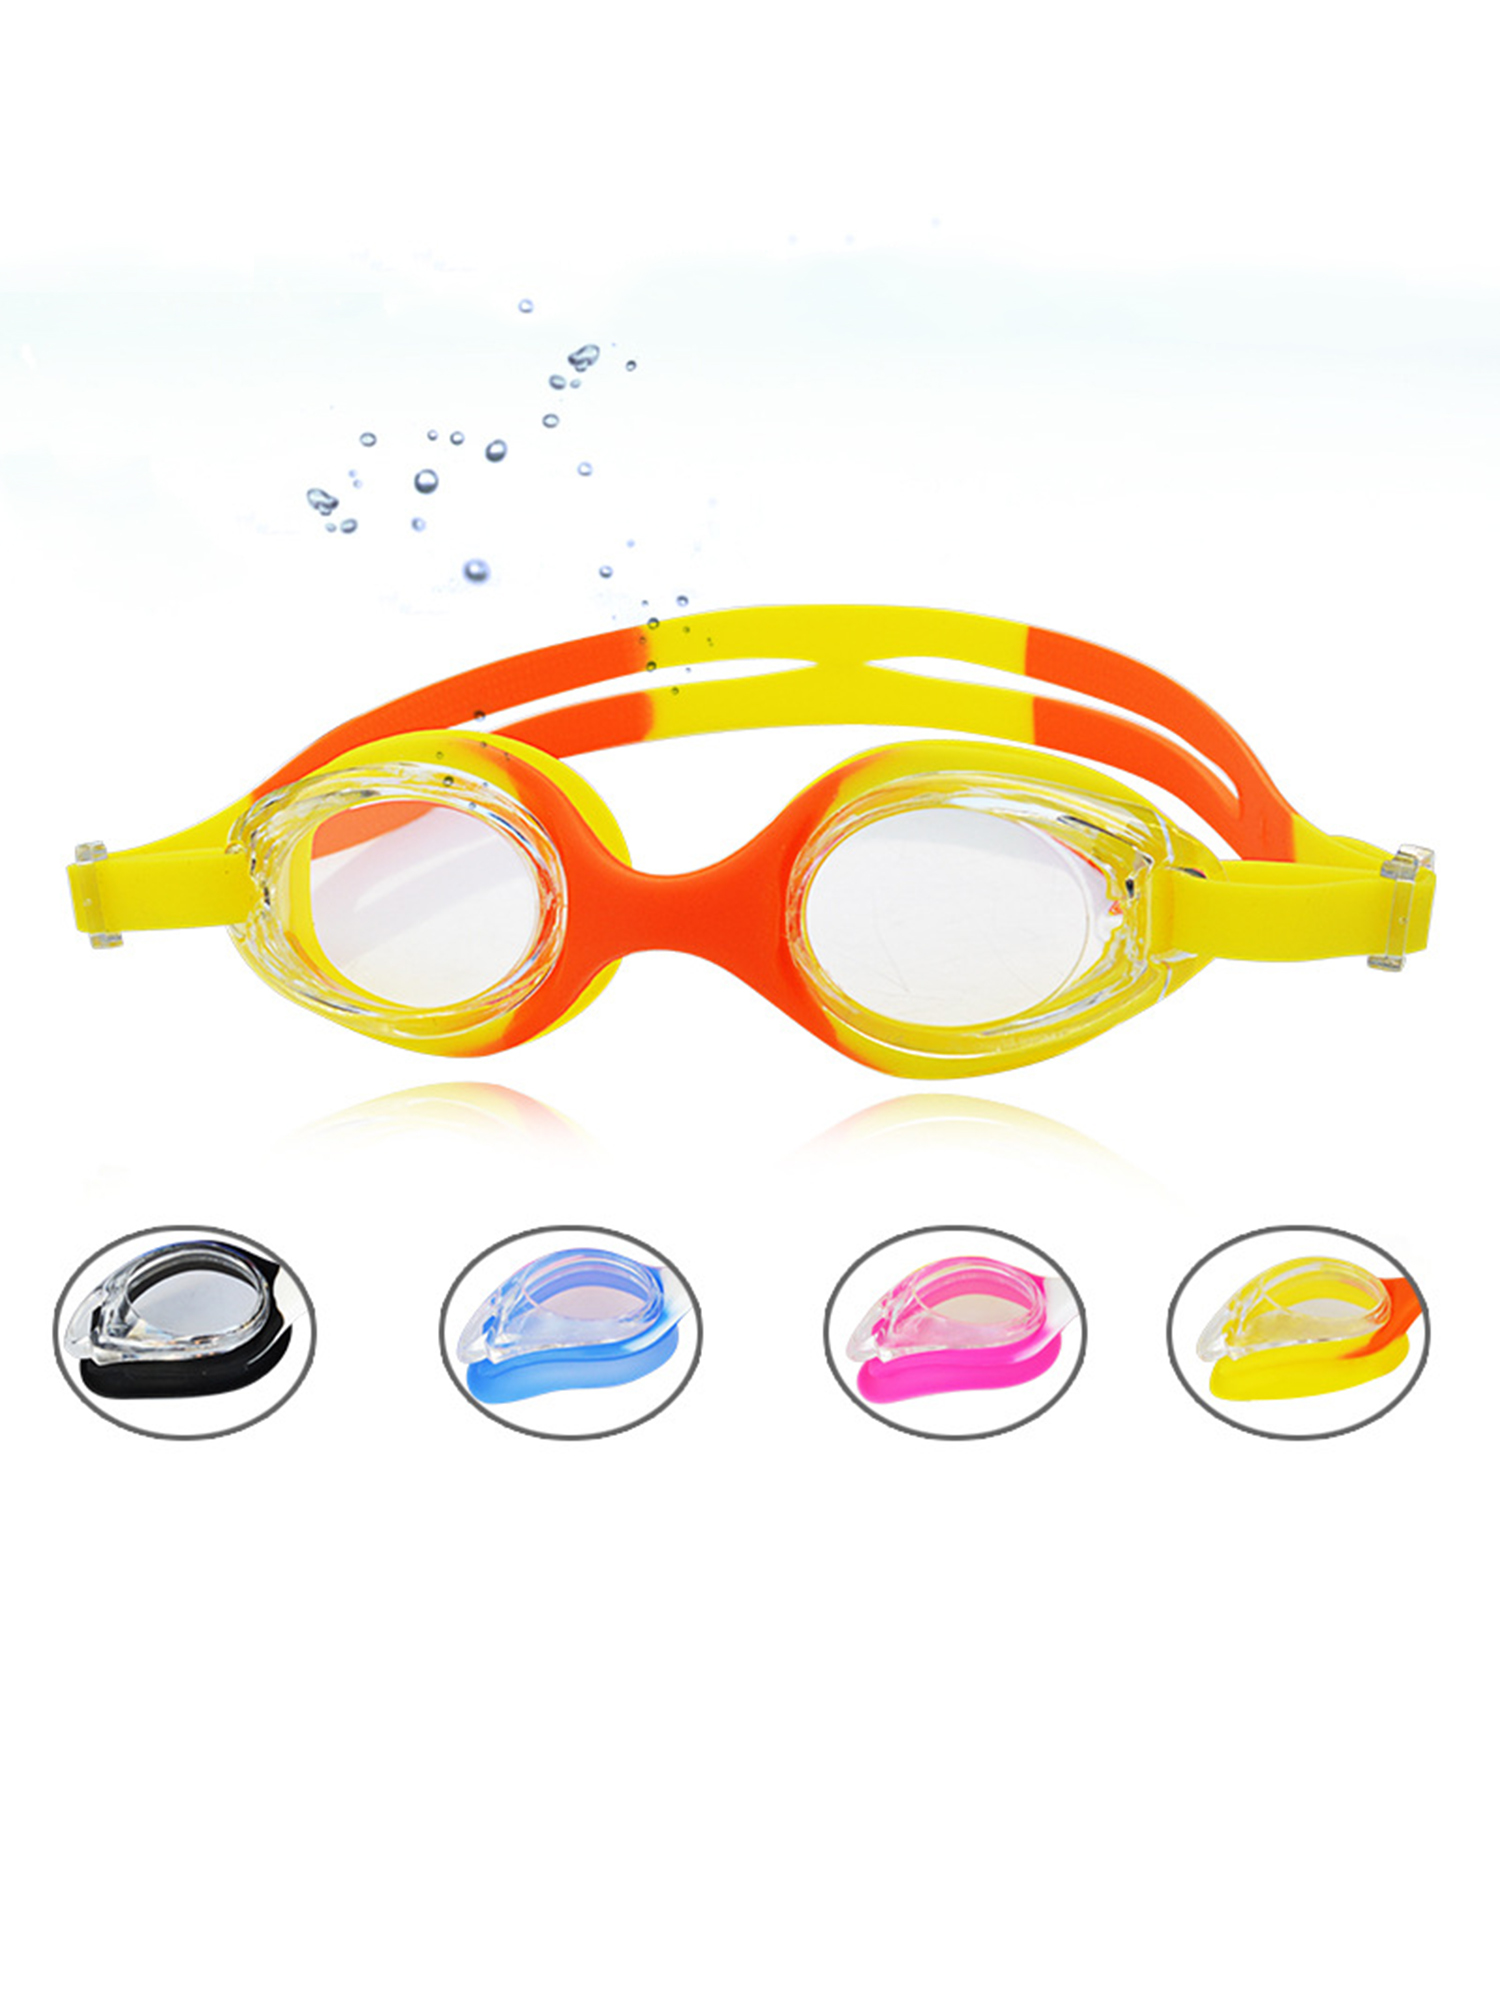 Anyprize Anti-fog Swimming Goggles for Kids, Waterproof Swim Goggles with Transparent Lens for Child, Comfortable... by